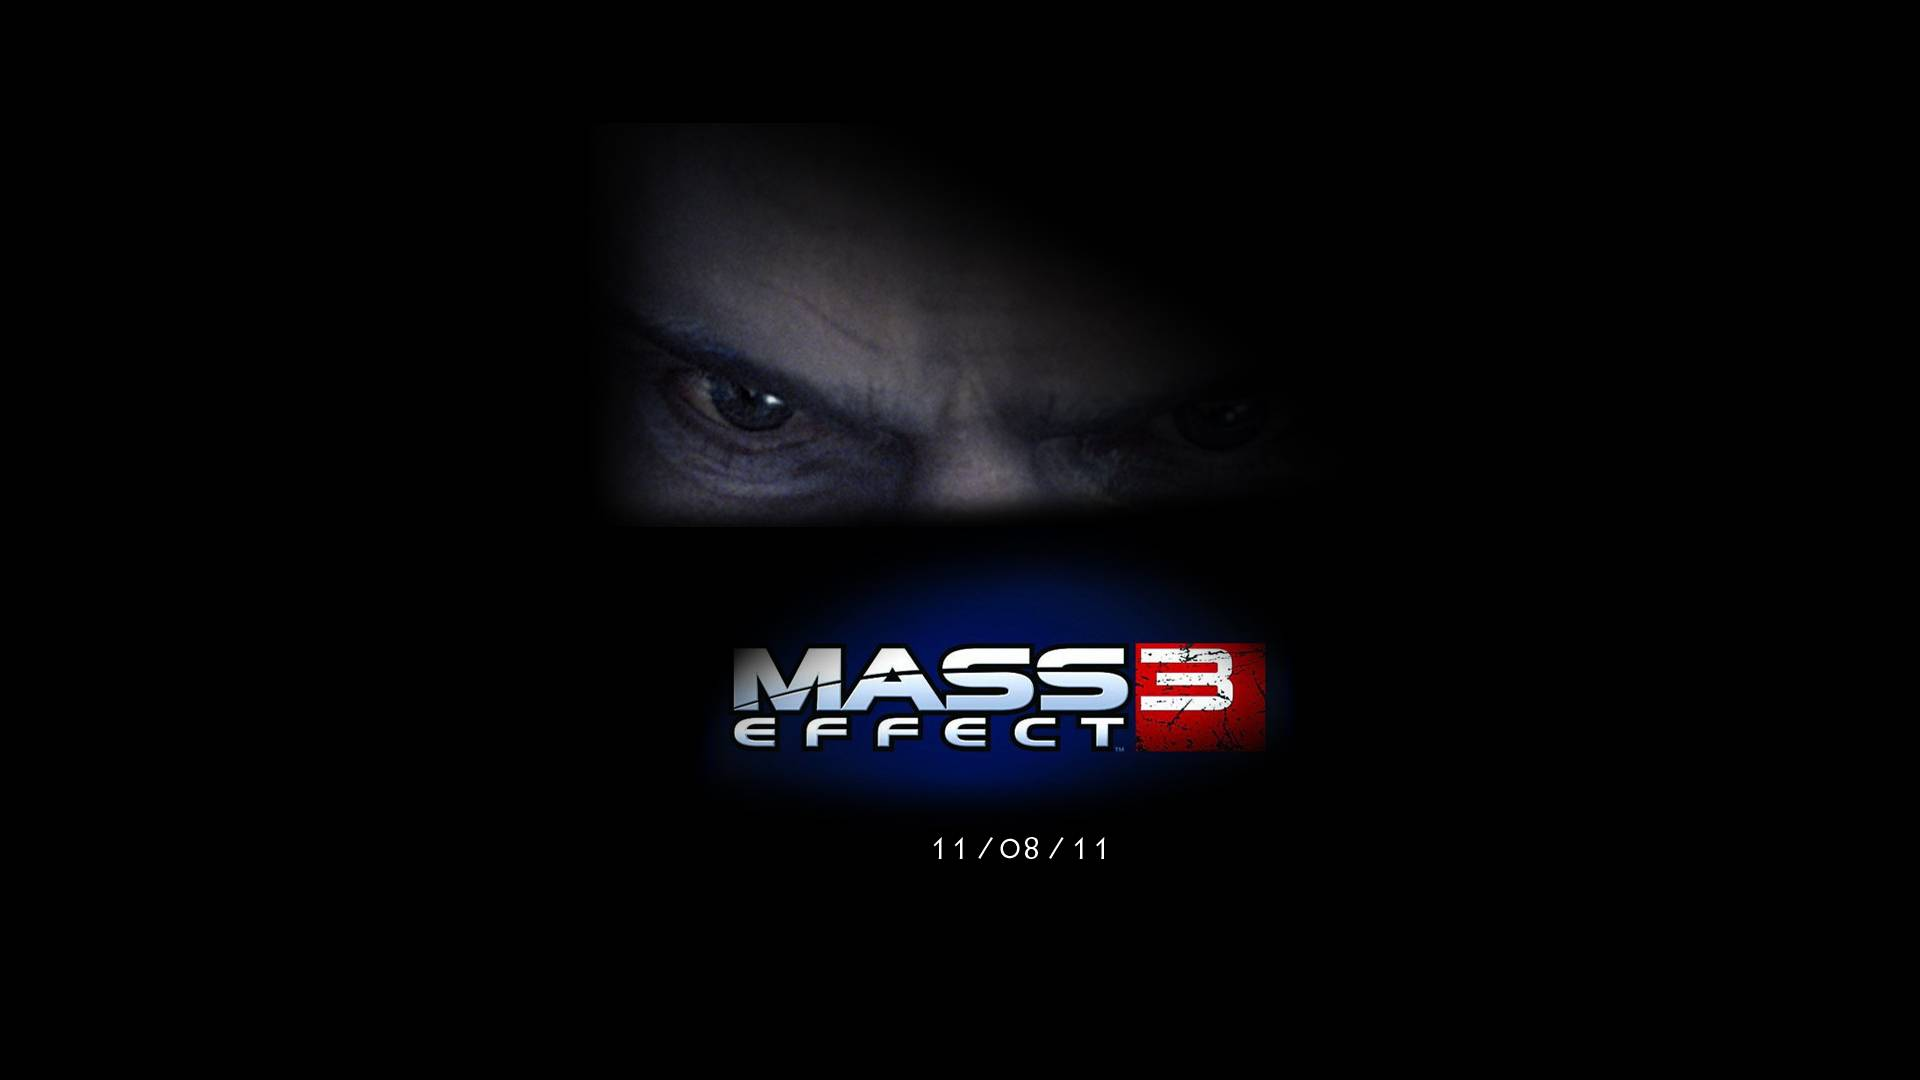 mass-effect-3-wallpapers-hd-in-1080p